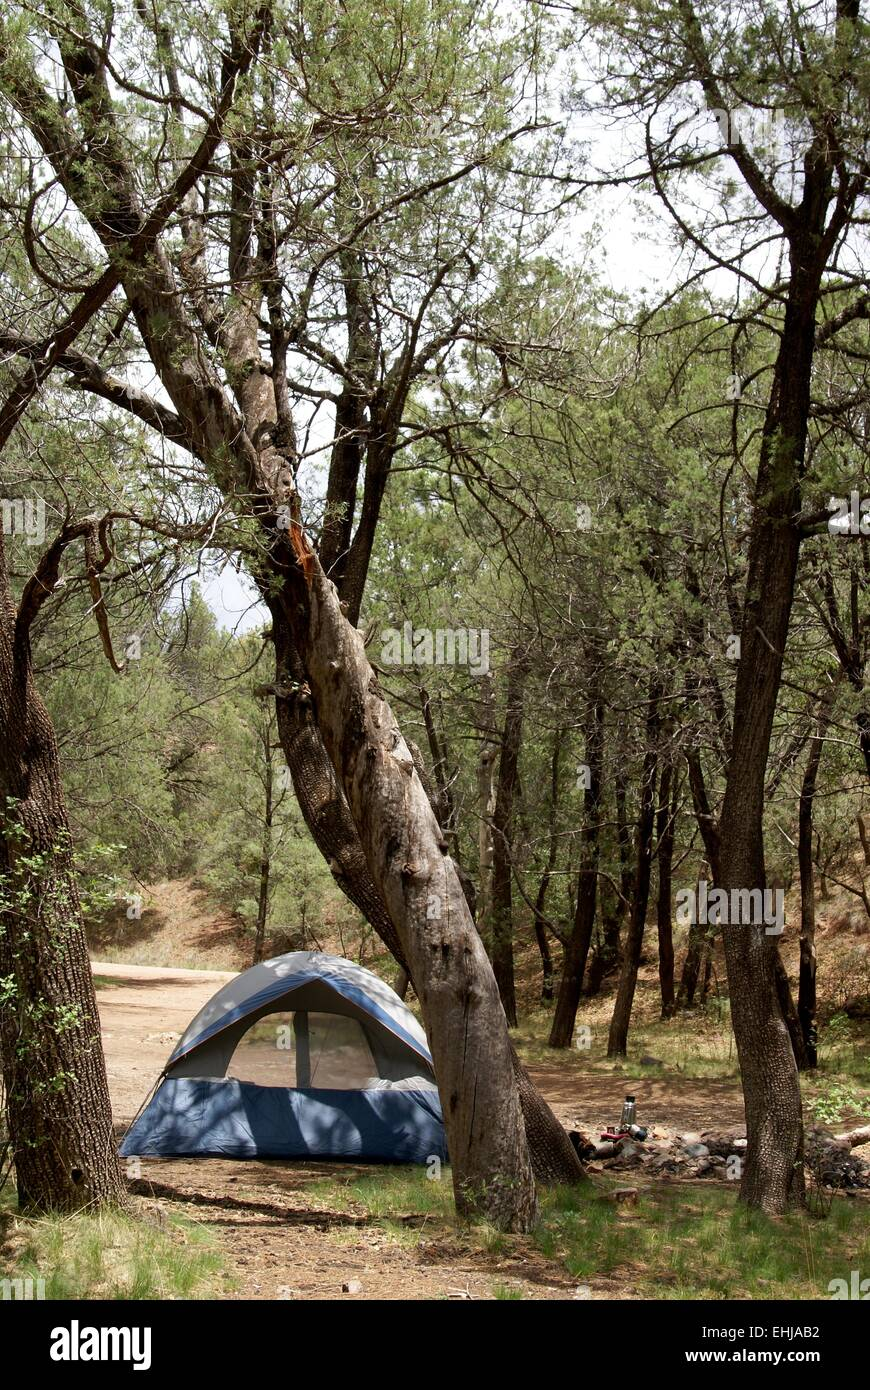 Camping in the forest. Tent sits among trees at a primitive campground in vertical format - Stock Image